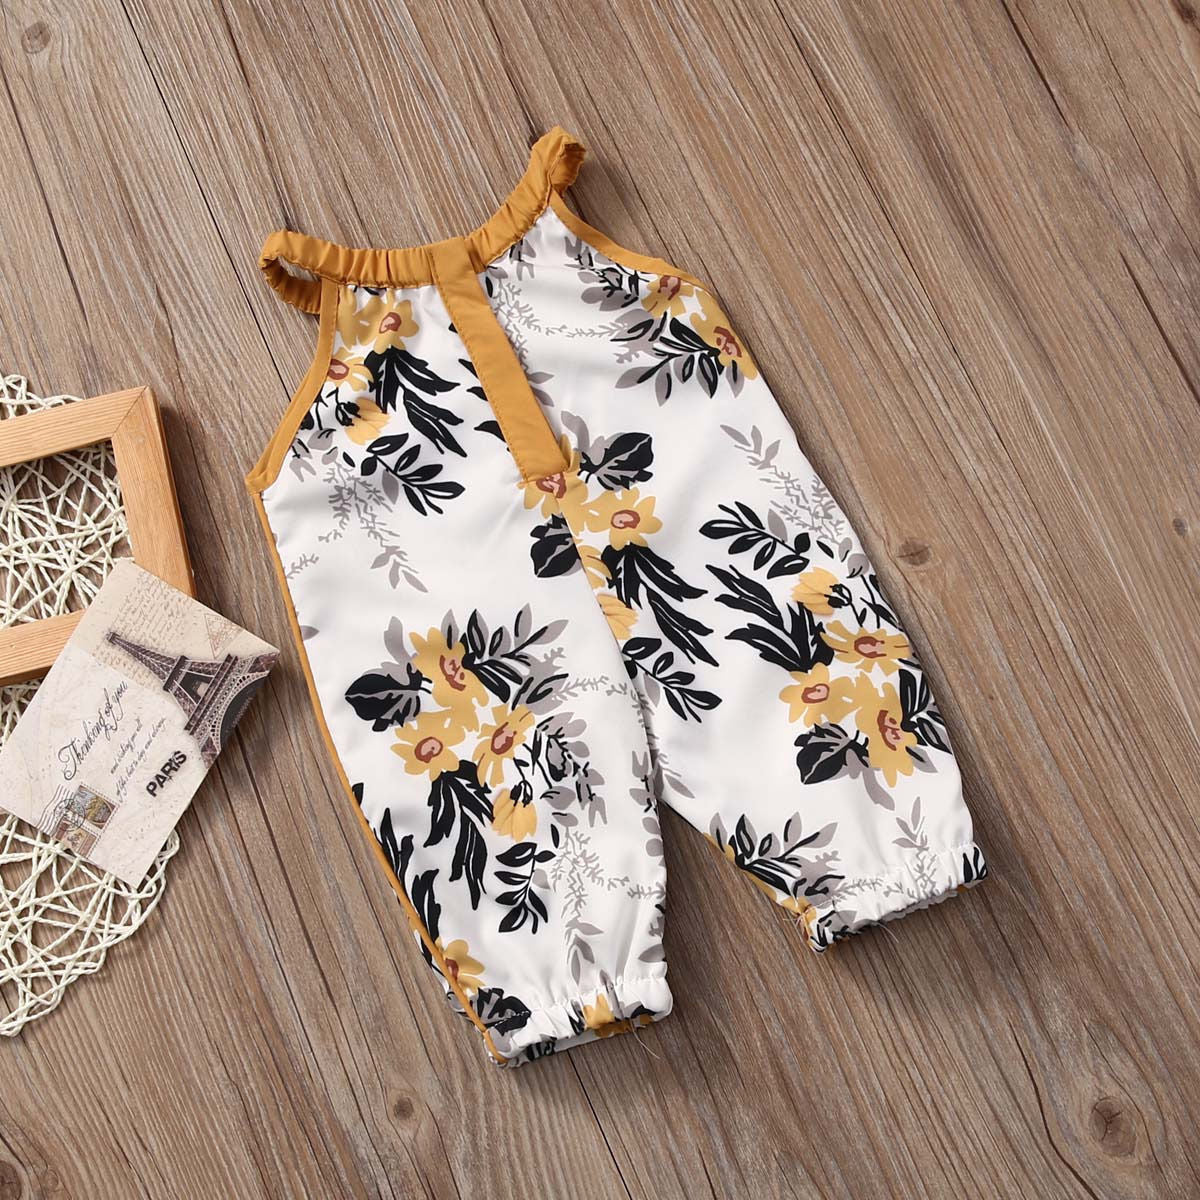 Infant Newborn Baby Girl Boys Clothing Floral Princess Jumpsuit Flower Cotton Baby Romper Clothes Set-eosegal